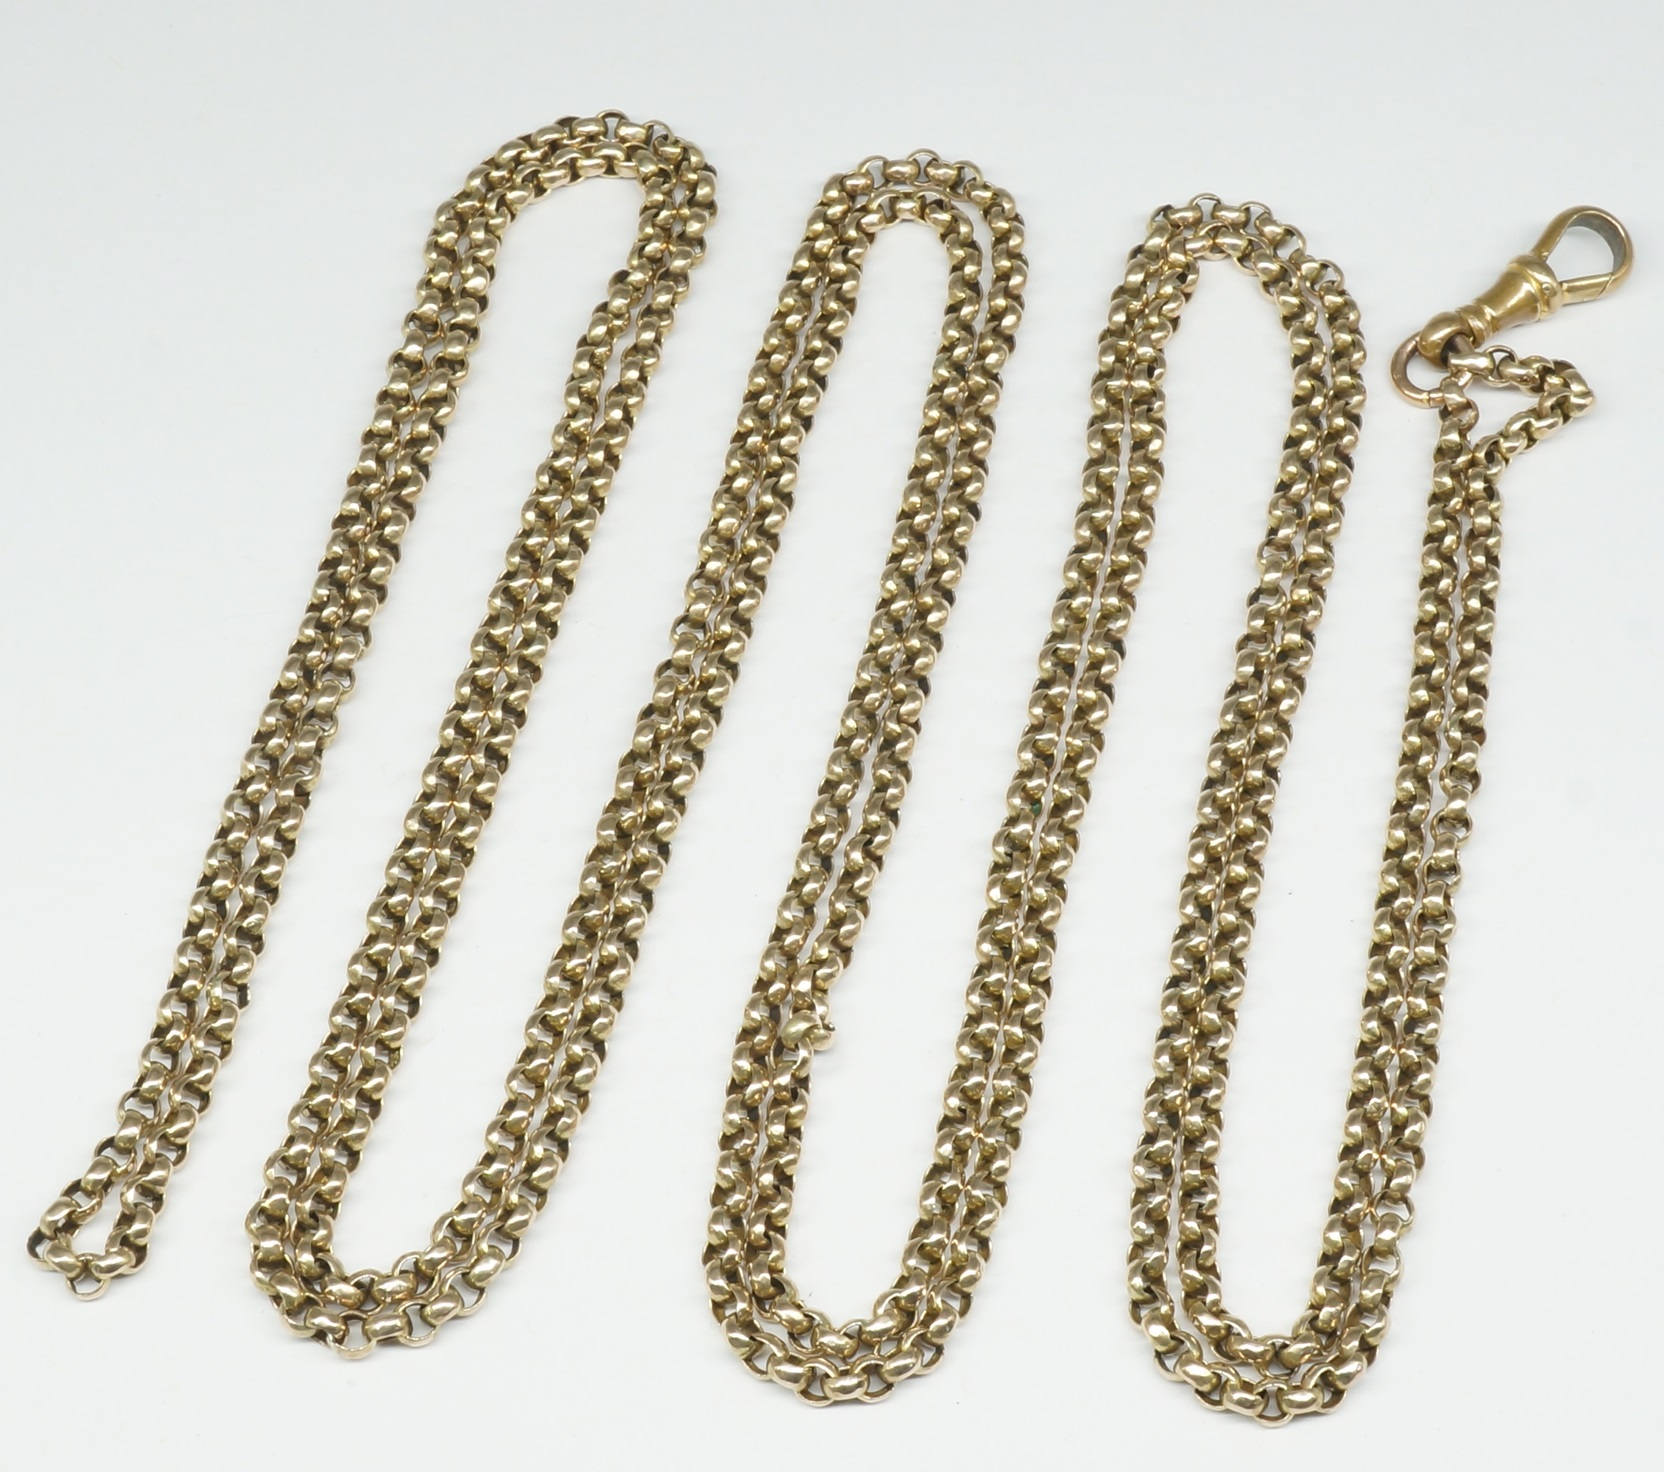 '9ct Yellow Gold Belcher Muff Chain'